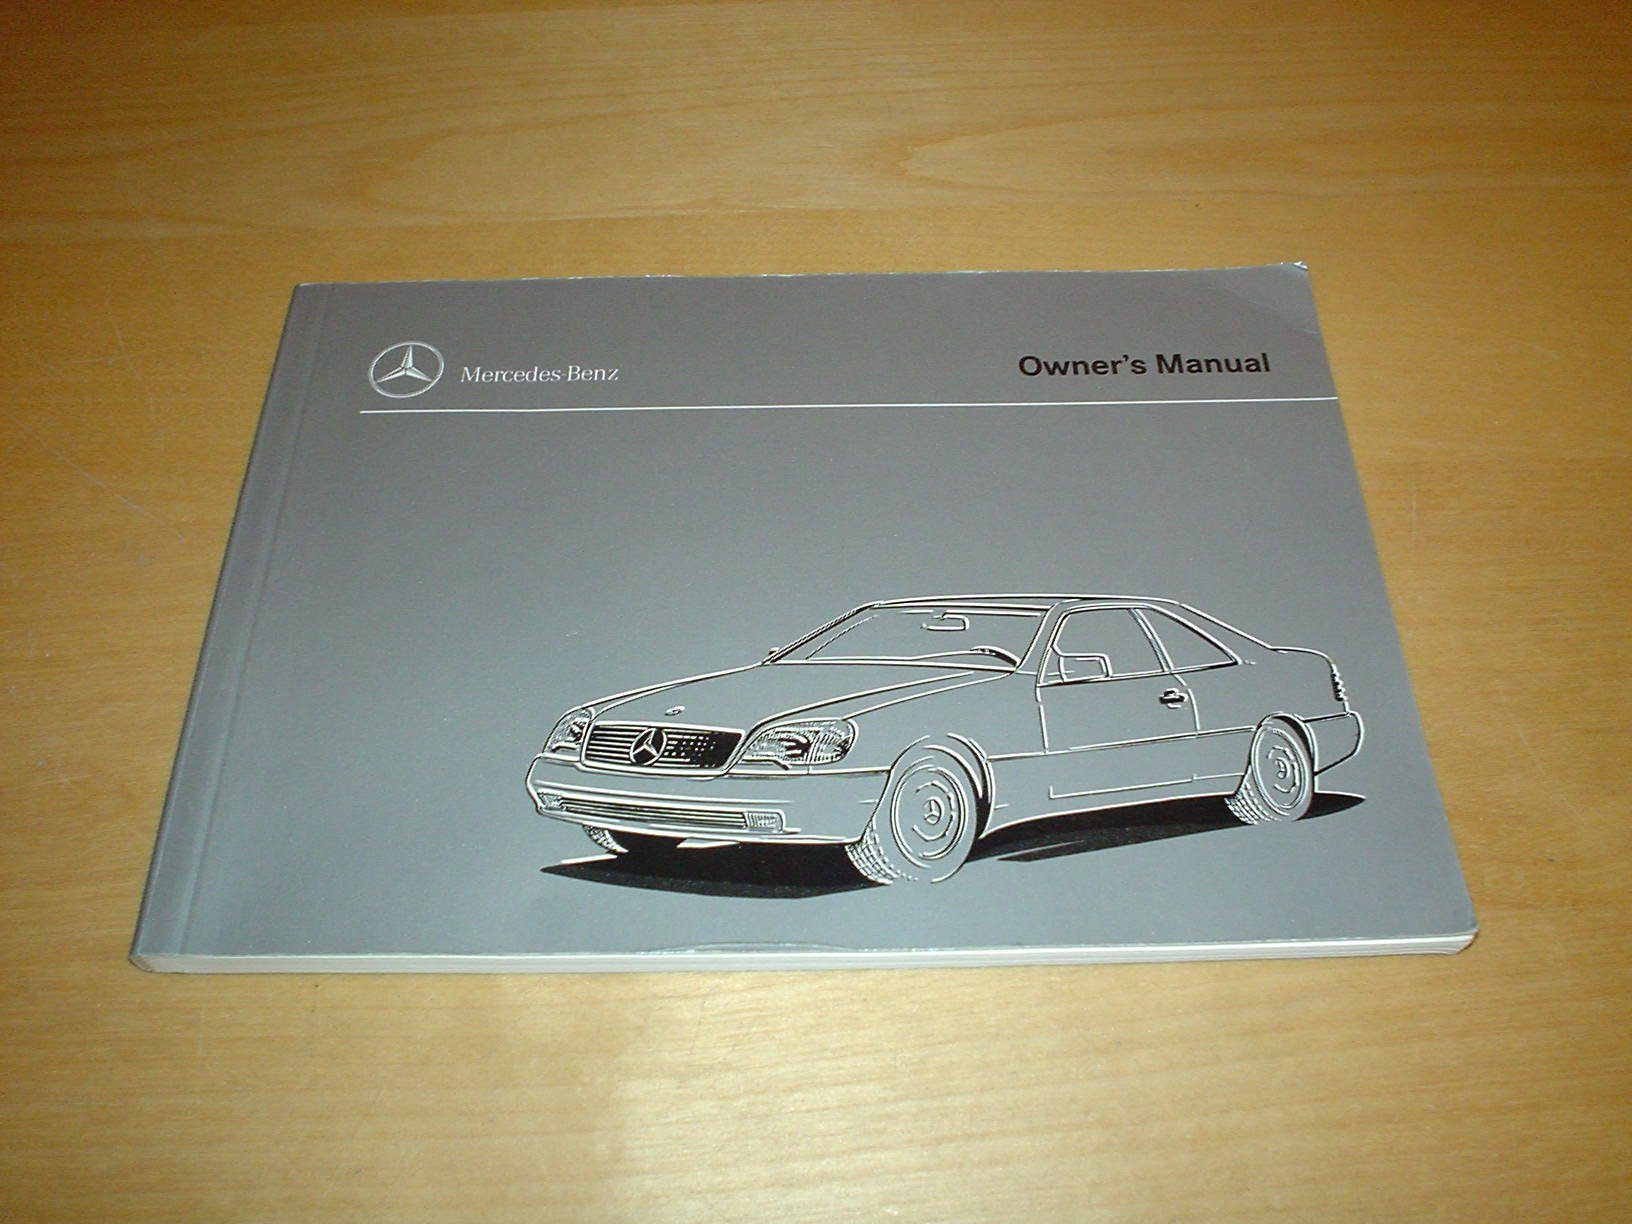 mercedes benz w140 s cl class coupe owners manual handbook 1992 rh amazon co uk Mercedes W220 Mercedes W140 AMG